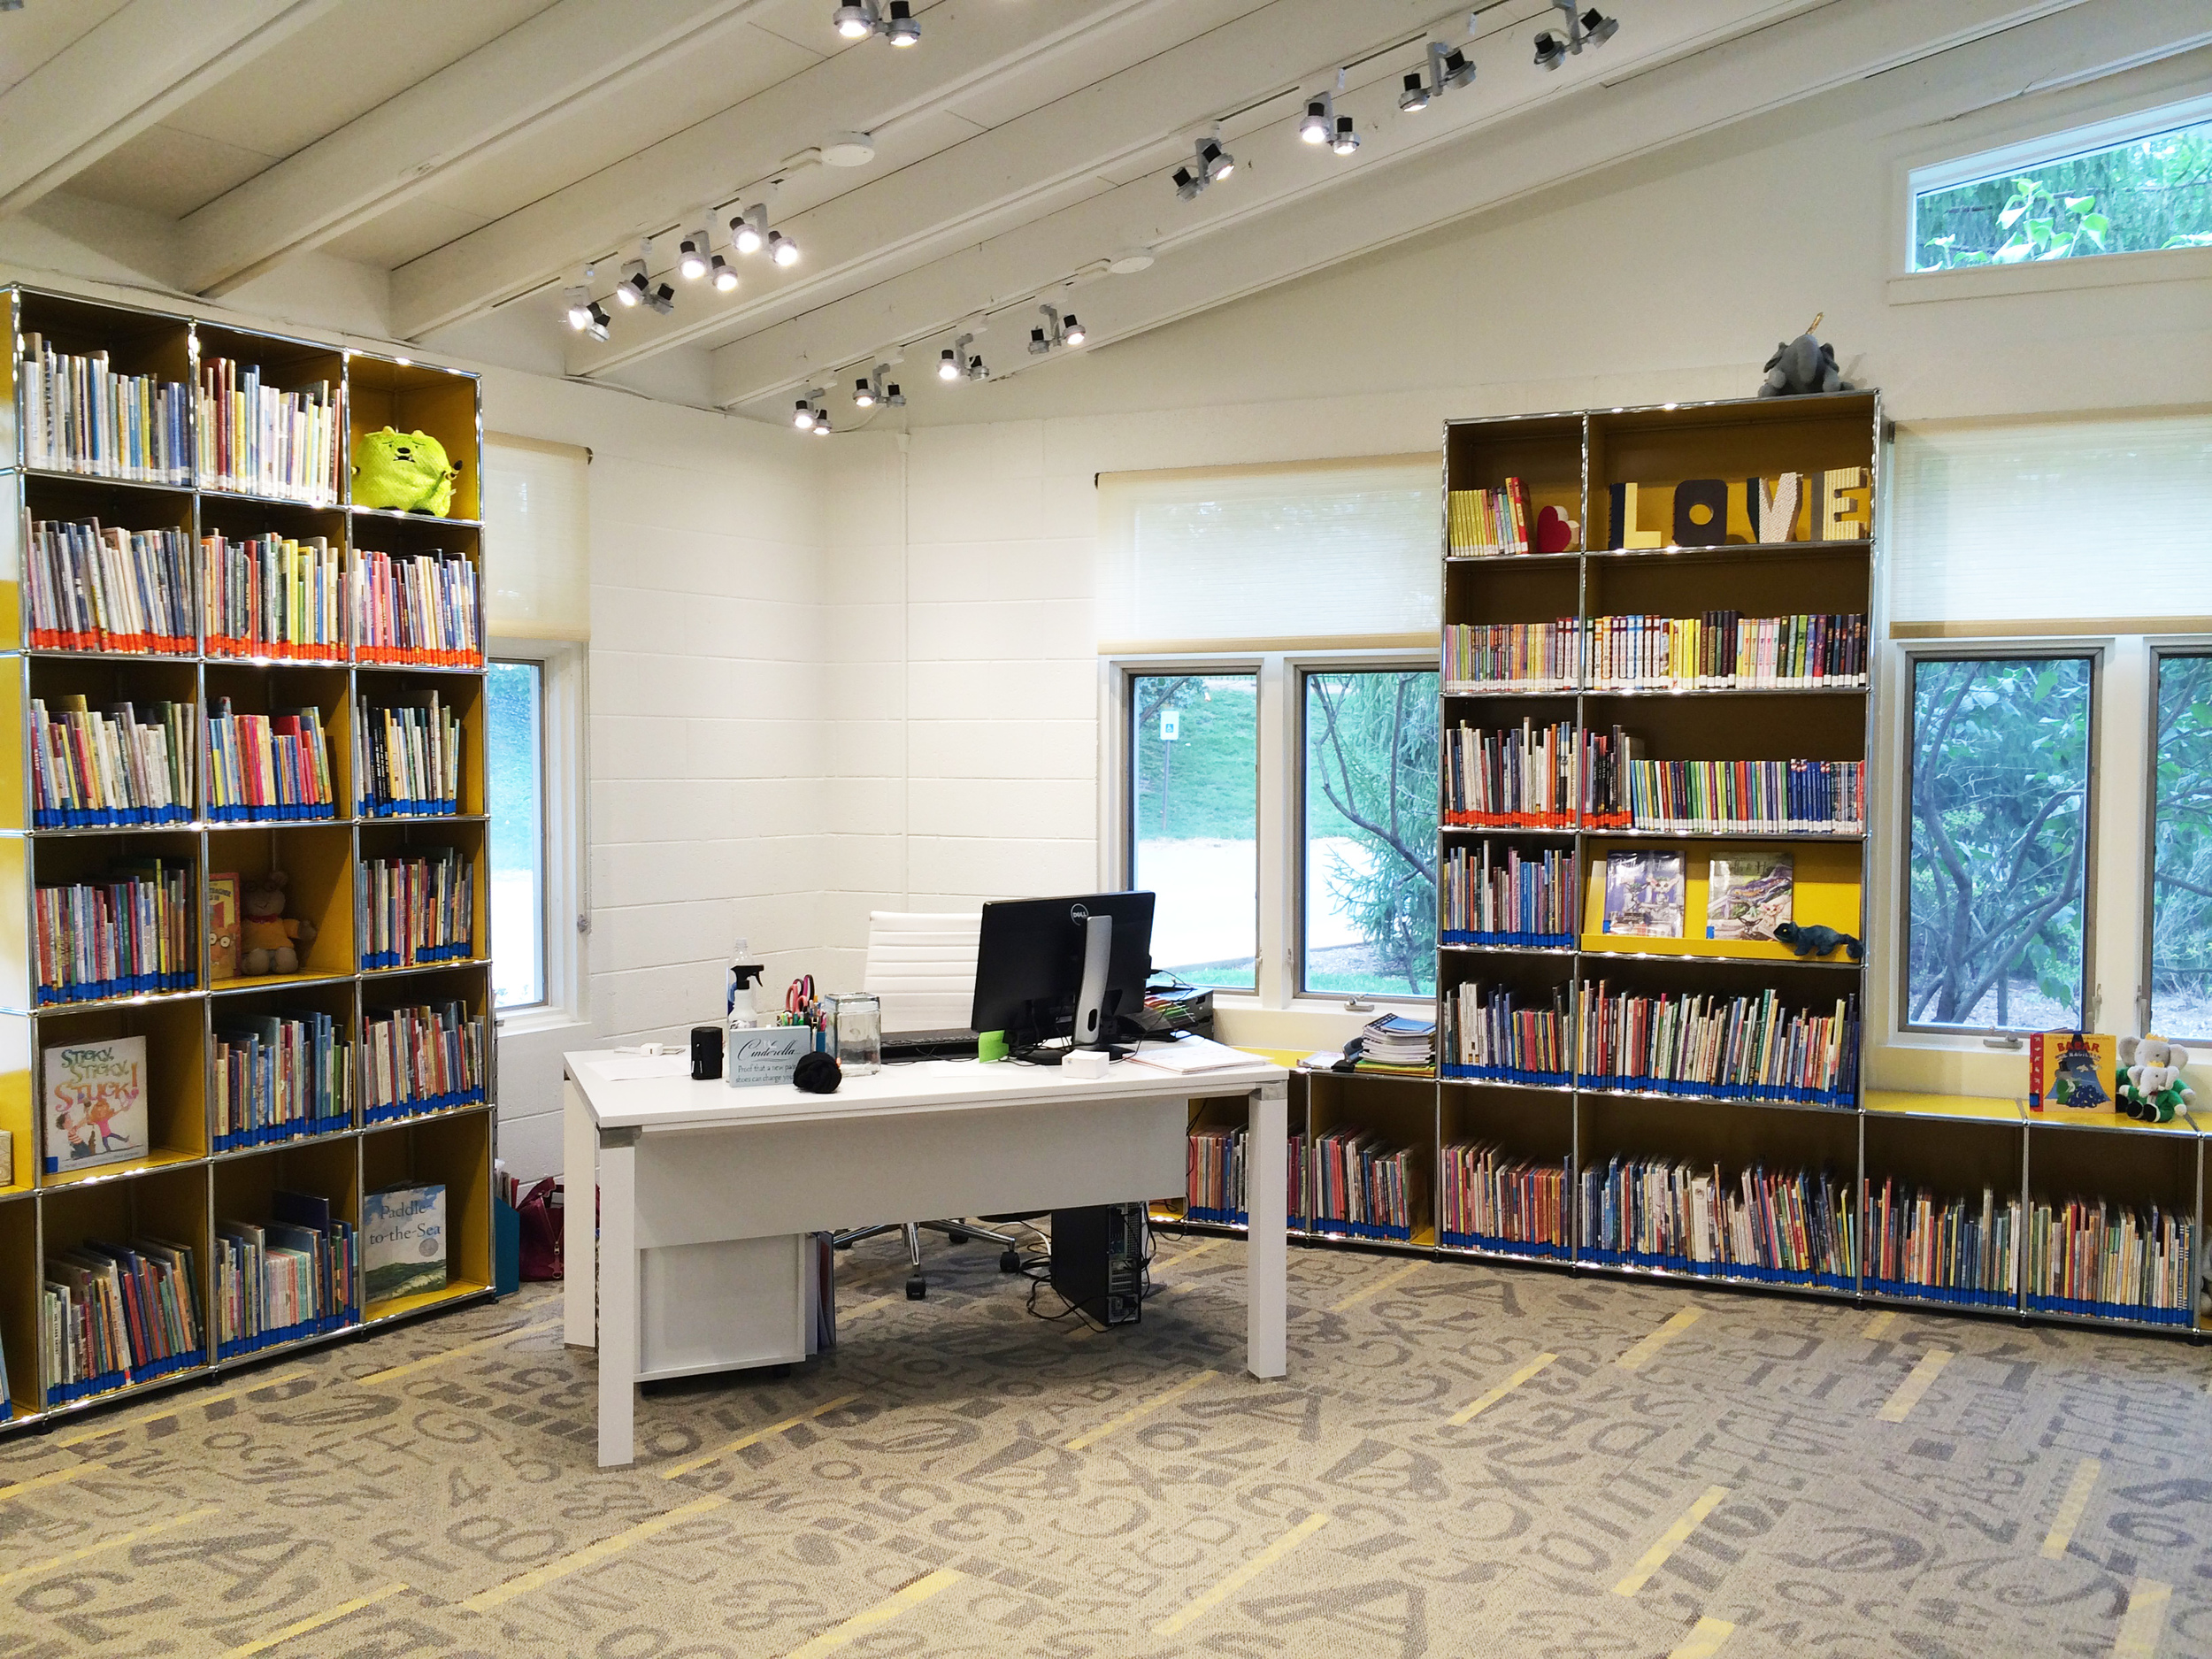 Custom shelving from USM, warm lighting from WAC, and Danish furniture from Jesper Office make the library a favorite spot for students and teachers, alike.